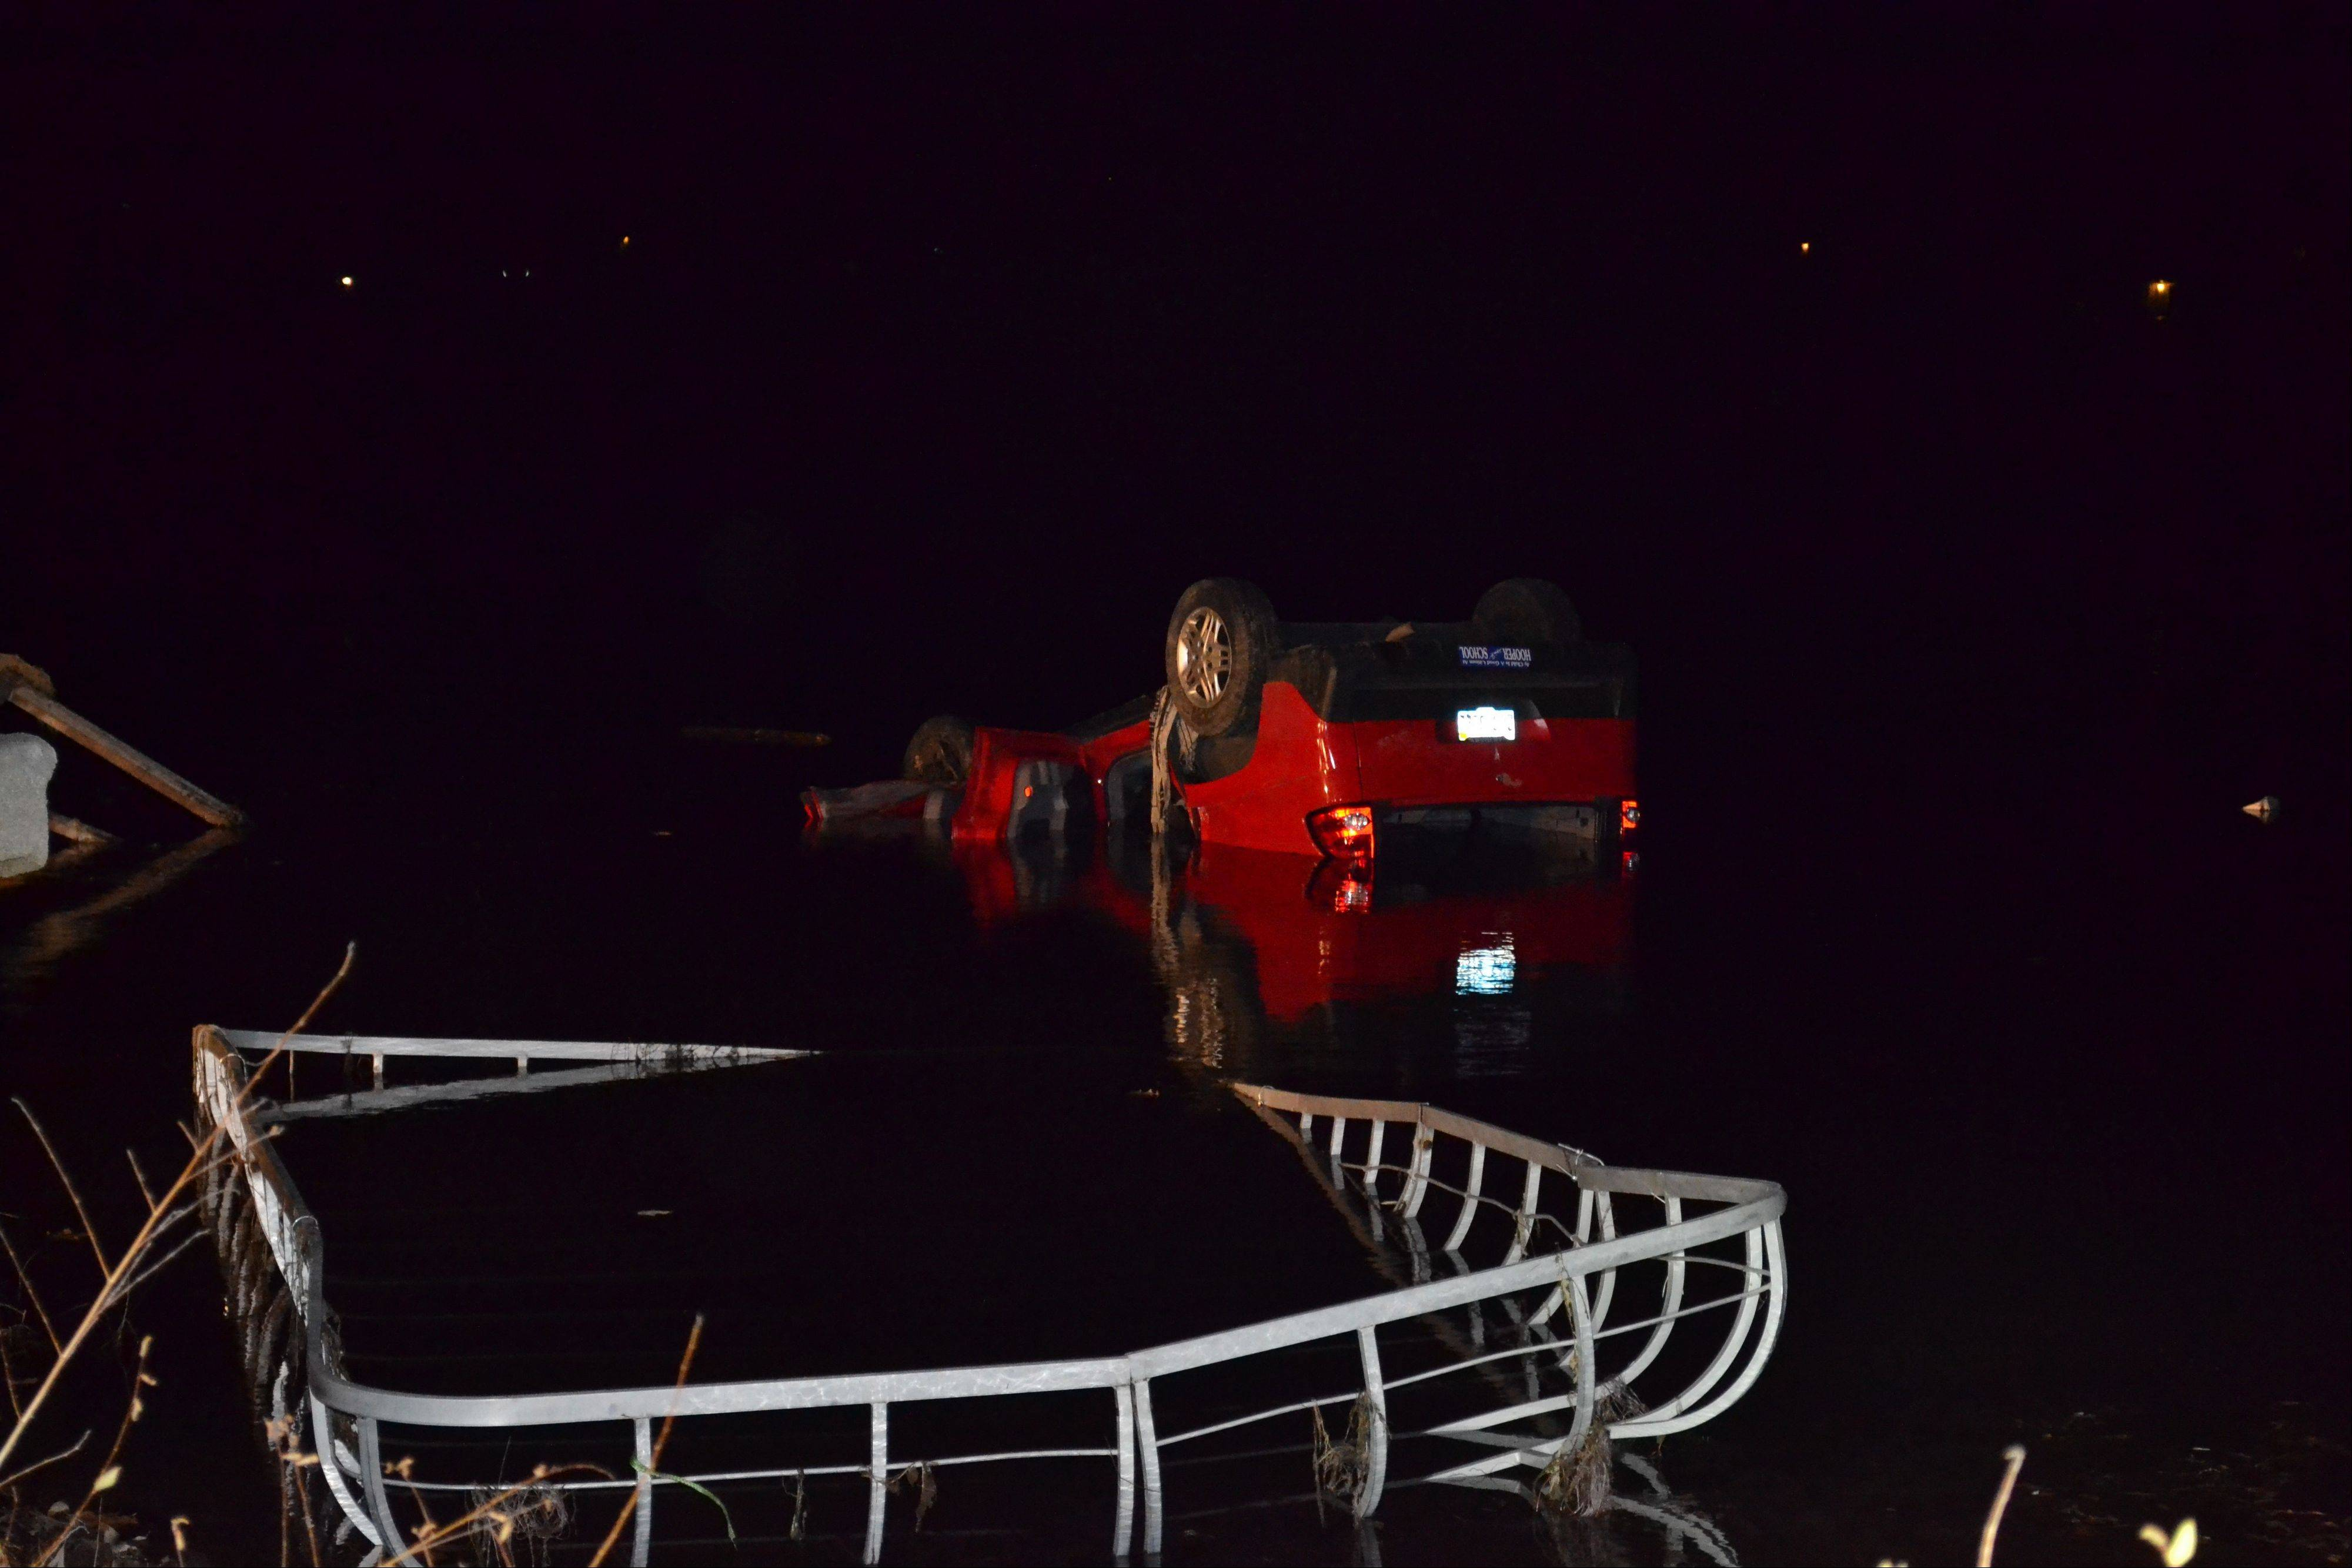 A Pontiac Aztek SUV left the road early Friday and ended up in Lake Miltmore. The driver, Nicholas Bonilla, 18, of Lindenhurst was trapped in the vehicle and drowned, officials said.